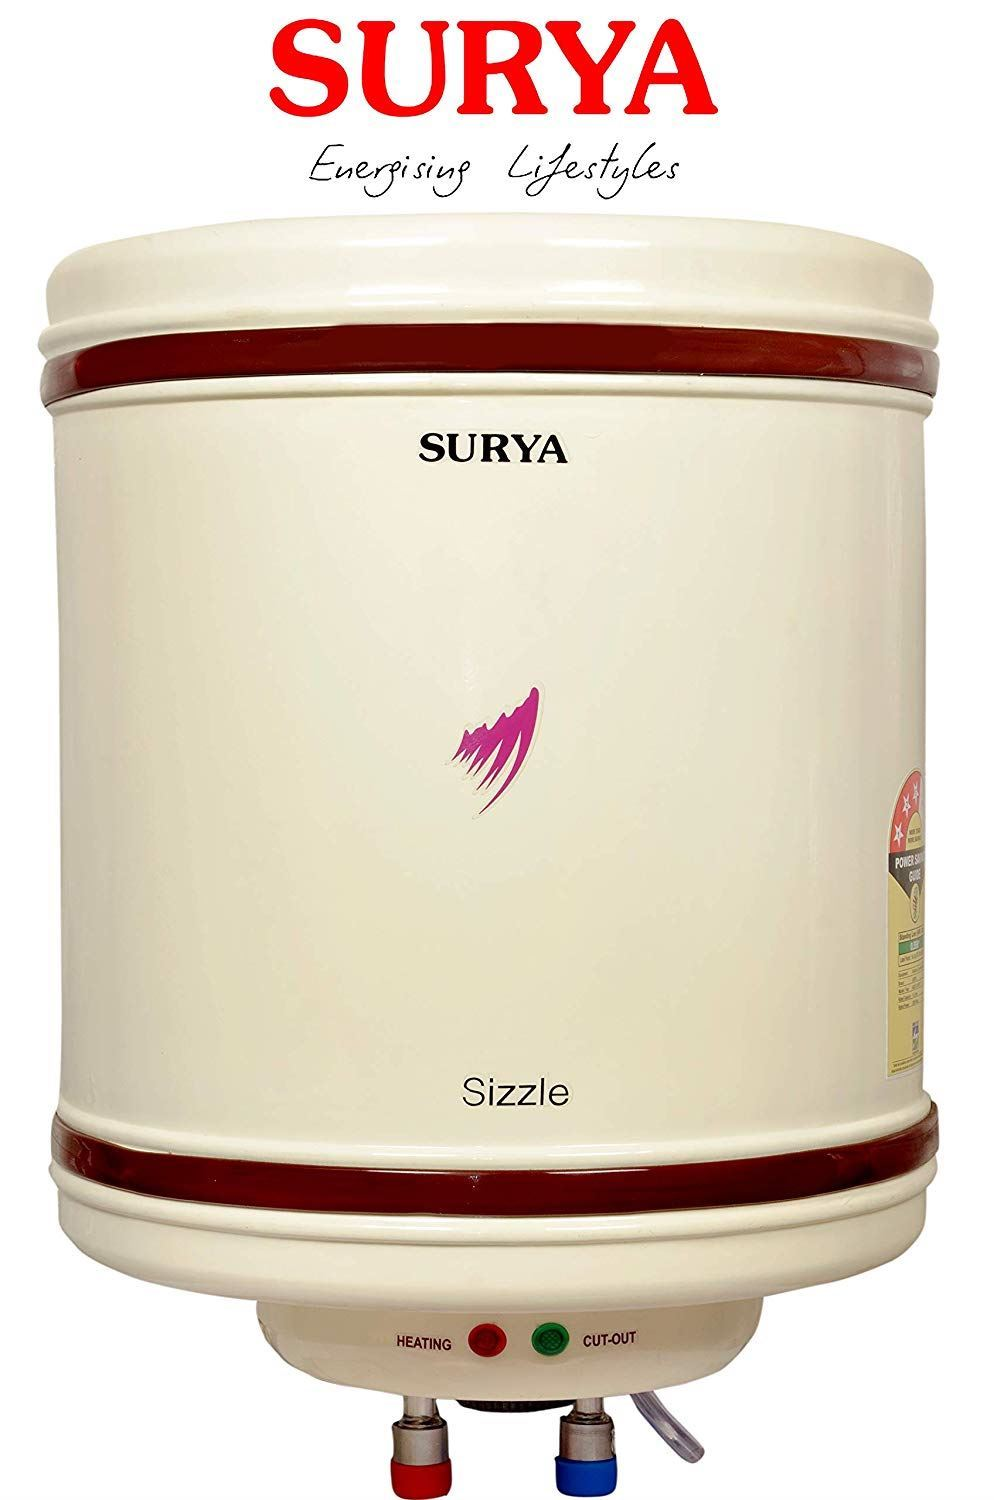 SURYA SIZZLE STORAGE WATER HEATER 25LTR